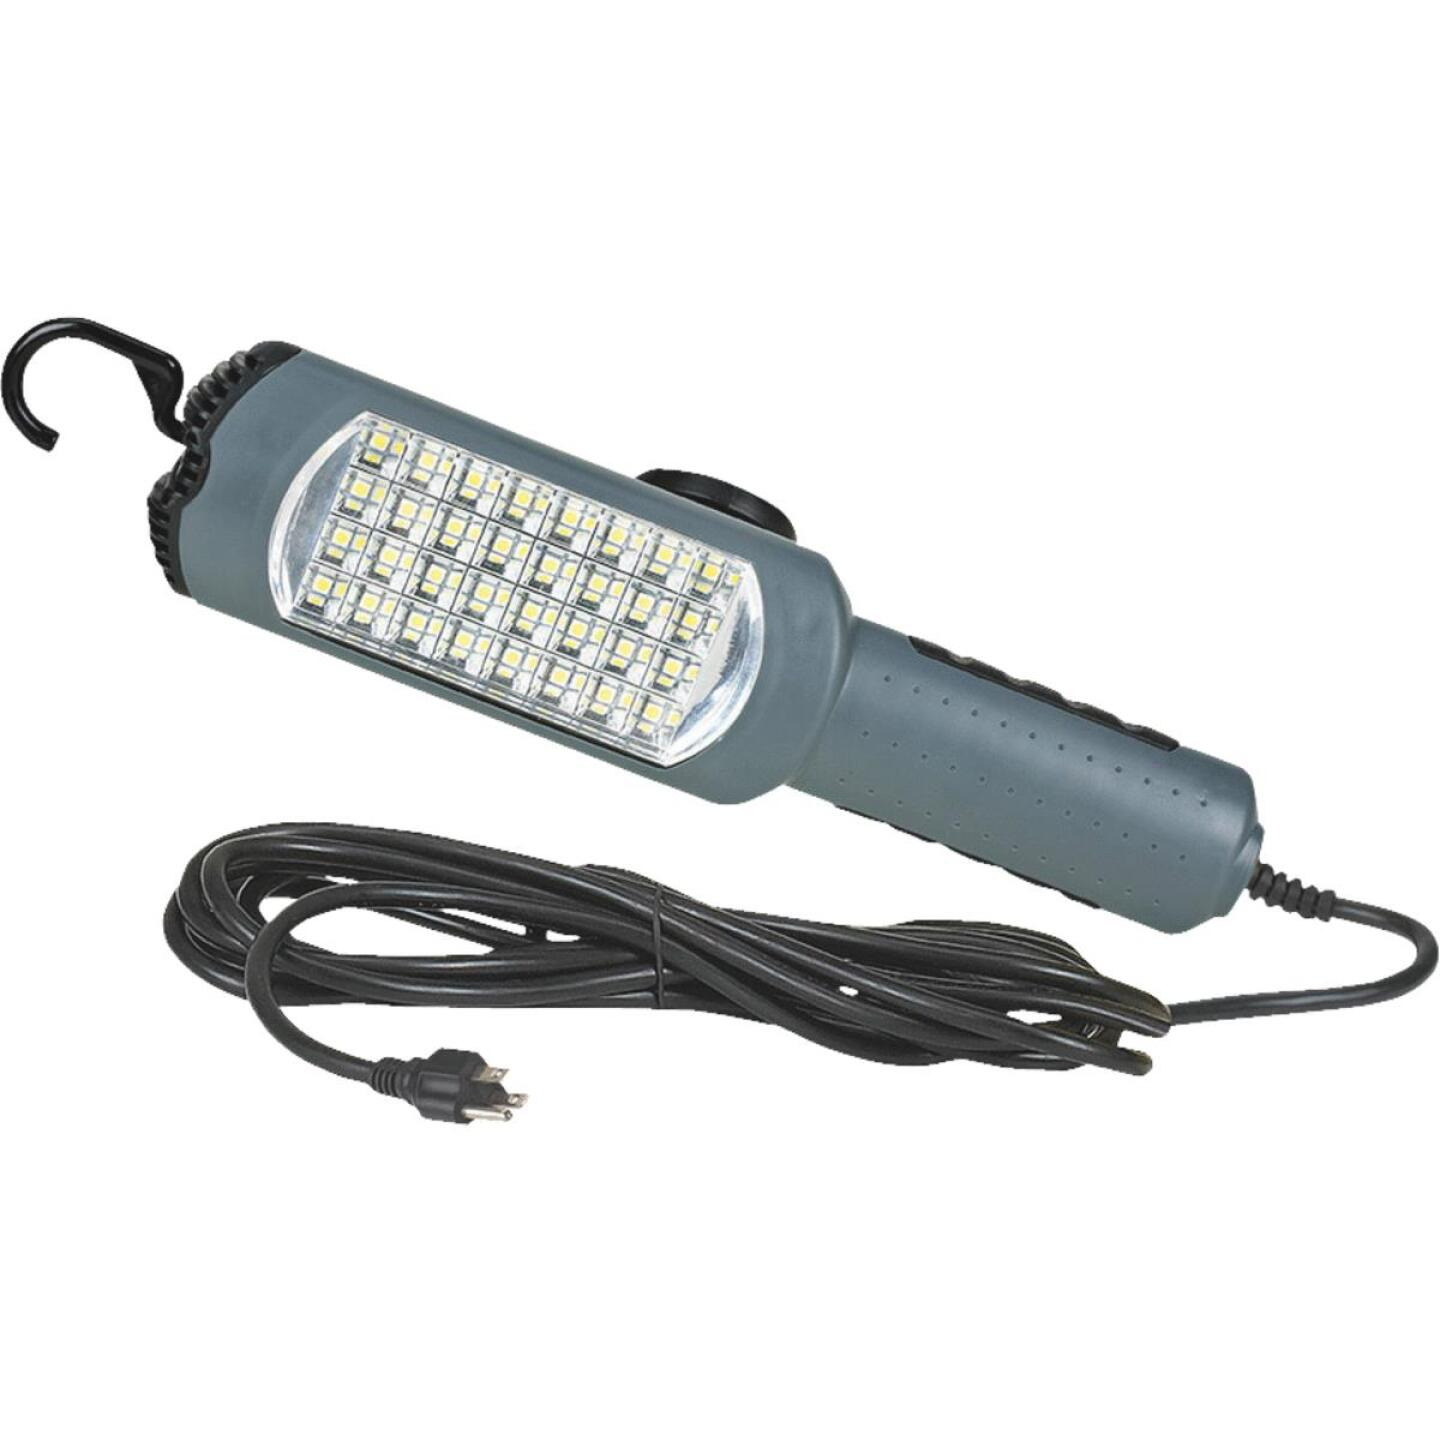 ProLite Electronix LED Trouble Light with 15 Ft. Power Cord Image 1